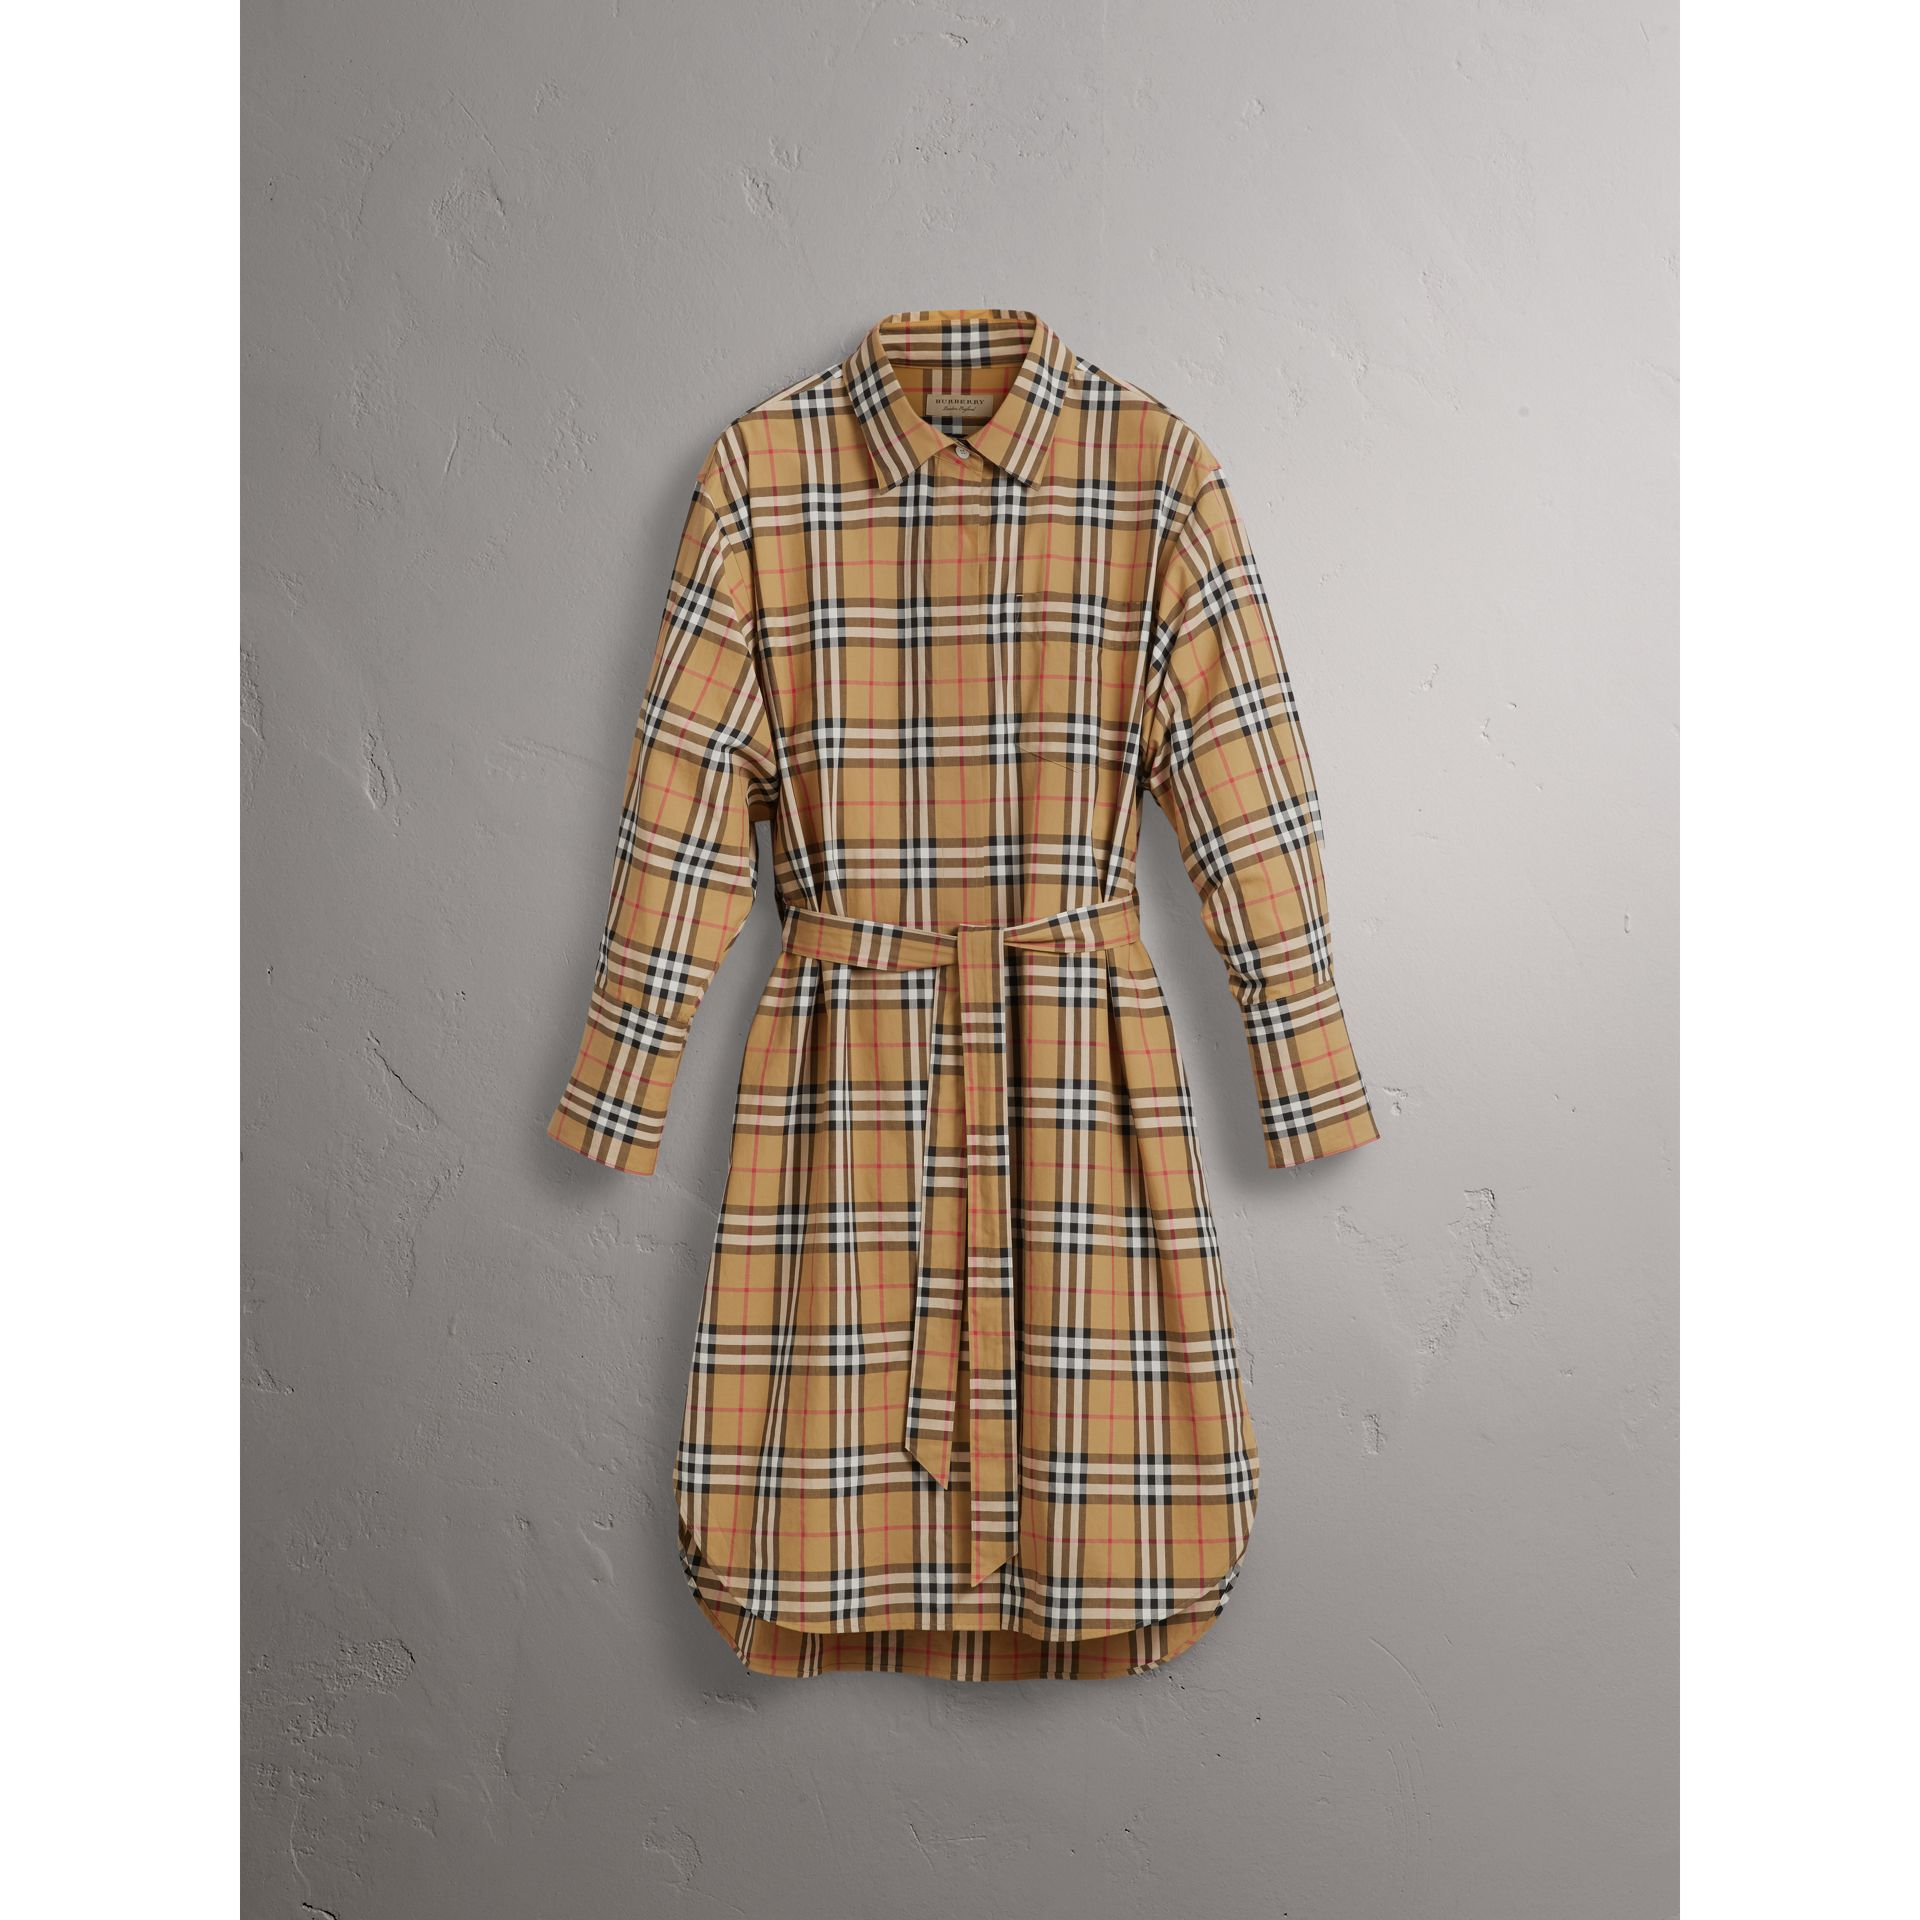 Tie-waist Vintage Check Cotton Shirt Dress in Antique Yellow - Women | Burberry Singapore - gallery image 3